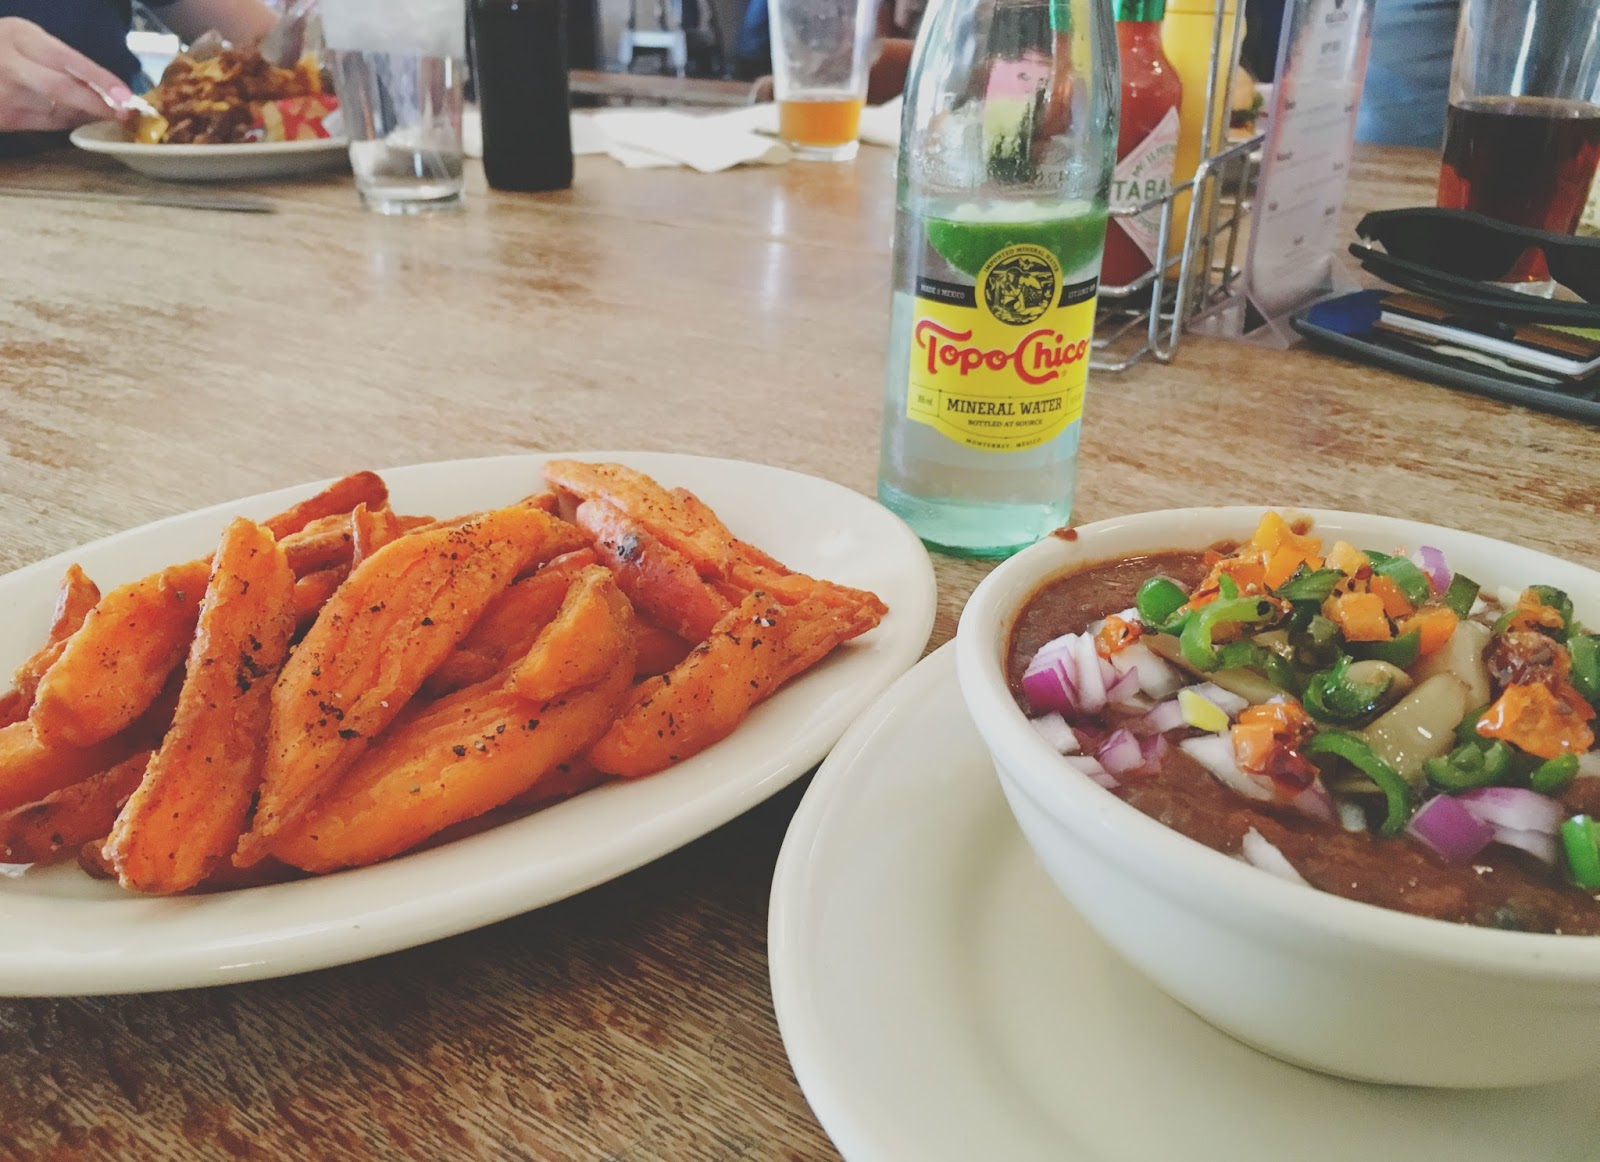 sweet potato fries and vegan chili at The Phoenix Saloon - a restaurant in New Braunfels, Texas